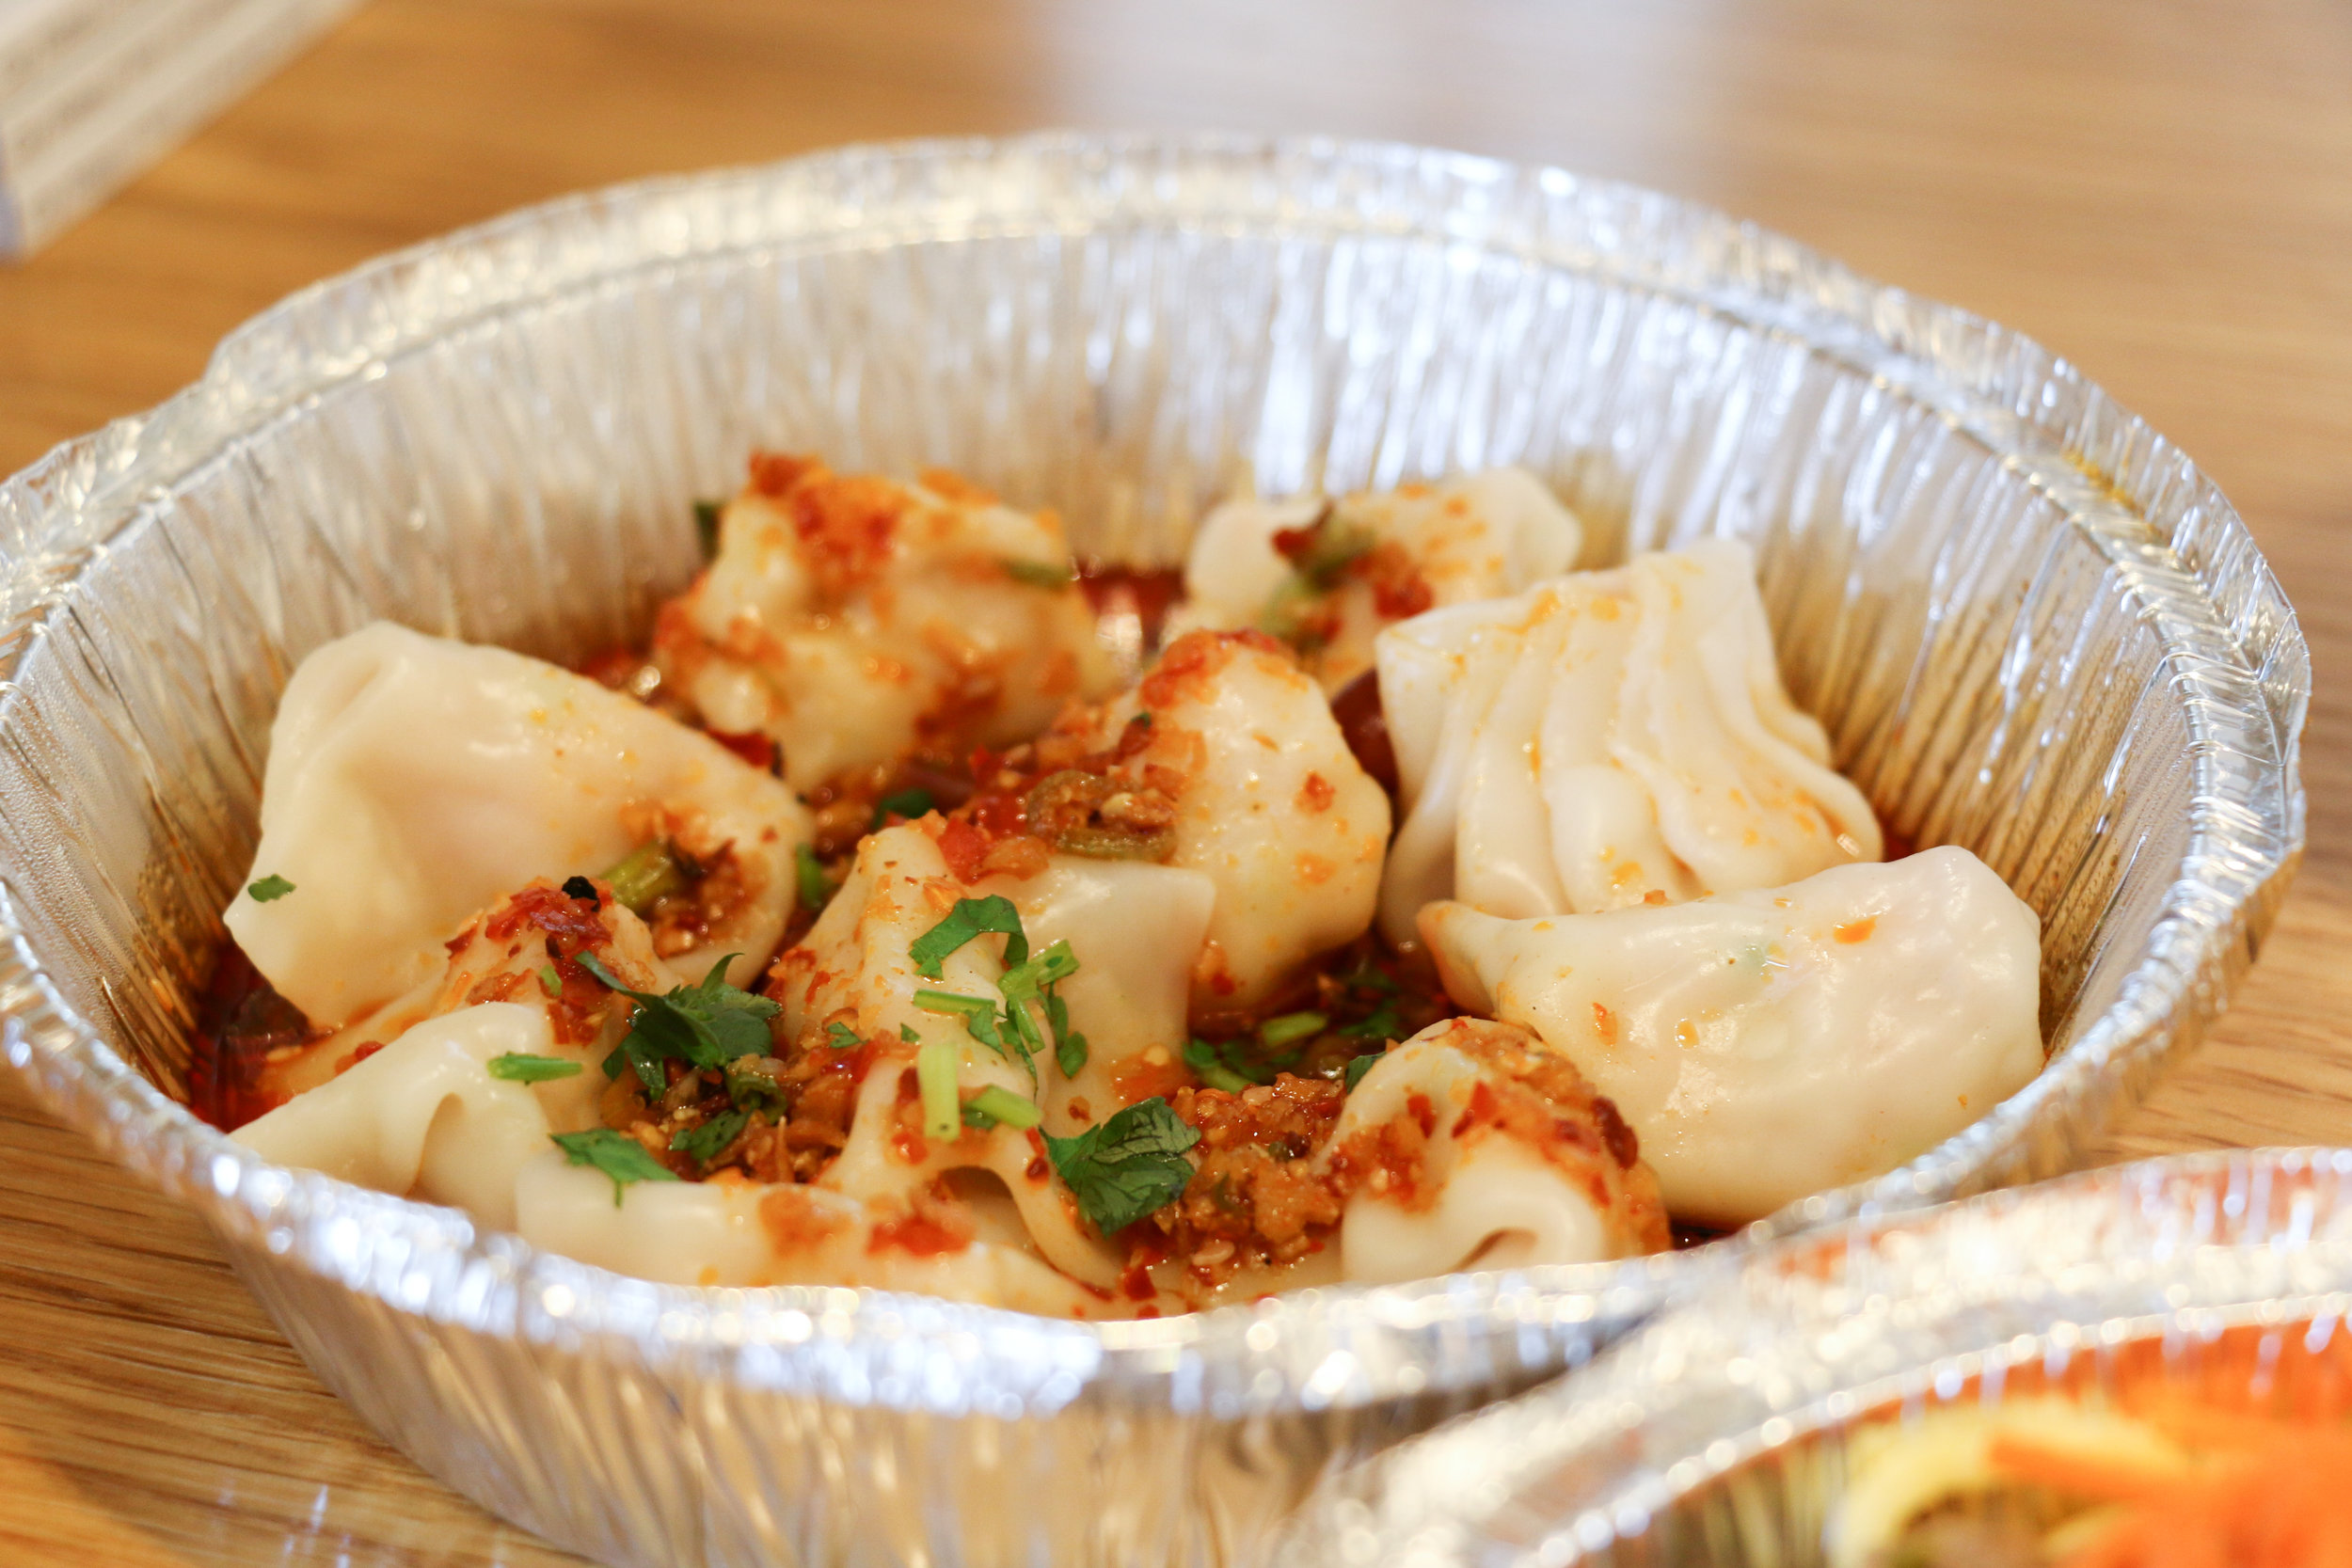 the-dumpling-lady-food-truck-charlotte-nc-chicken-shrimp-dumplings